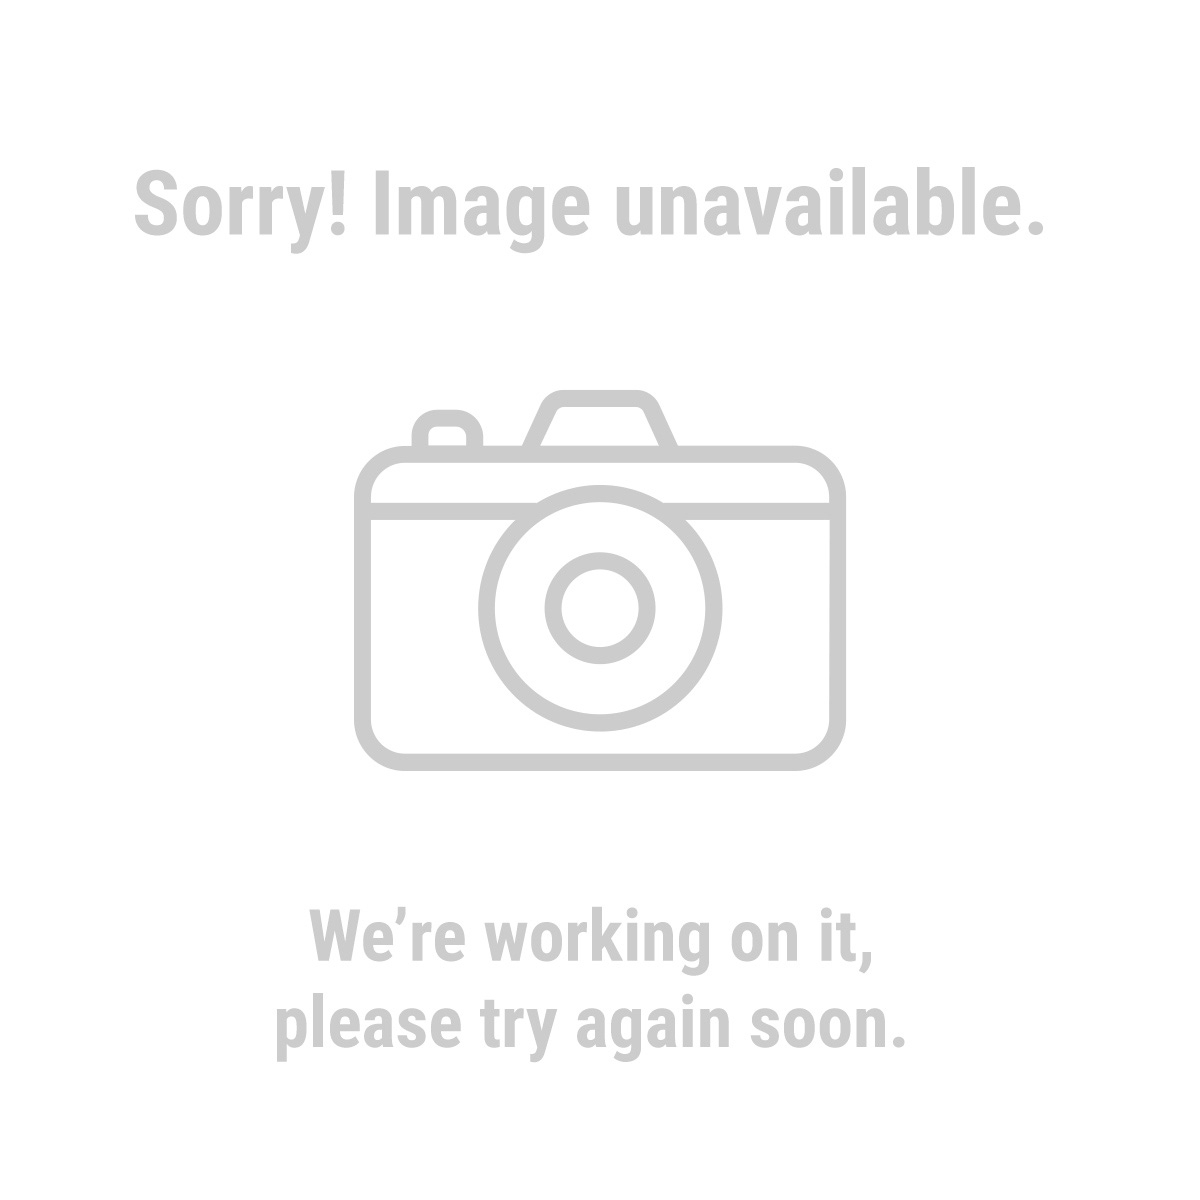 Warrior® 61802 8 Piece M2 High Speed Steel Silver and Deming Drill Bit Set